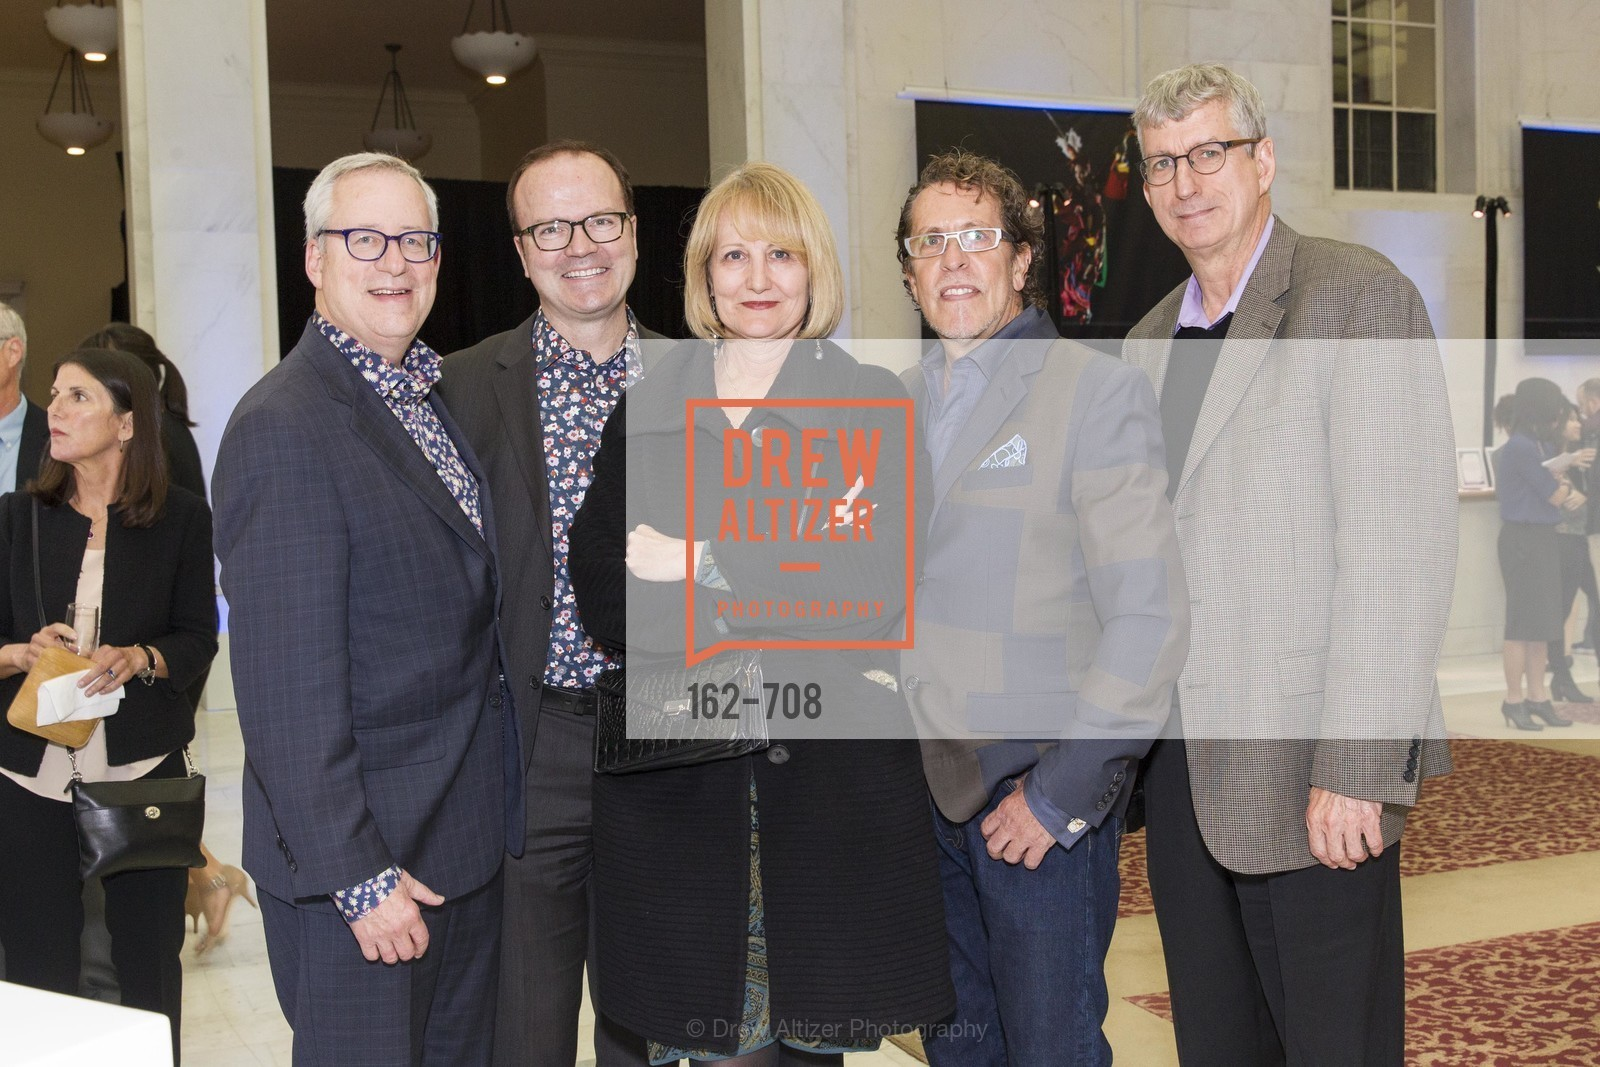 David Landis, Sean Dowdall, Susie Biehler, Glen Dimattia, David Leggett, PROJECT OPEN HAND Gala